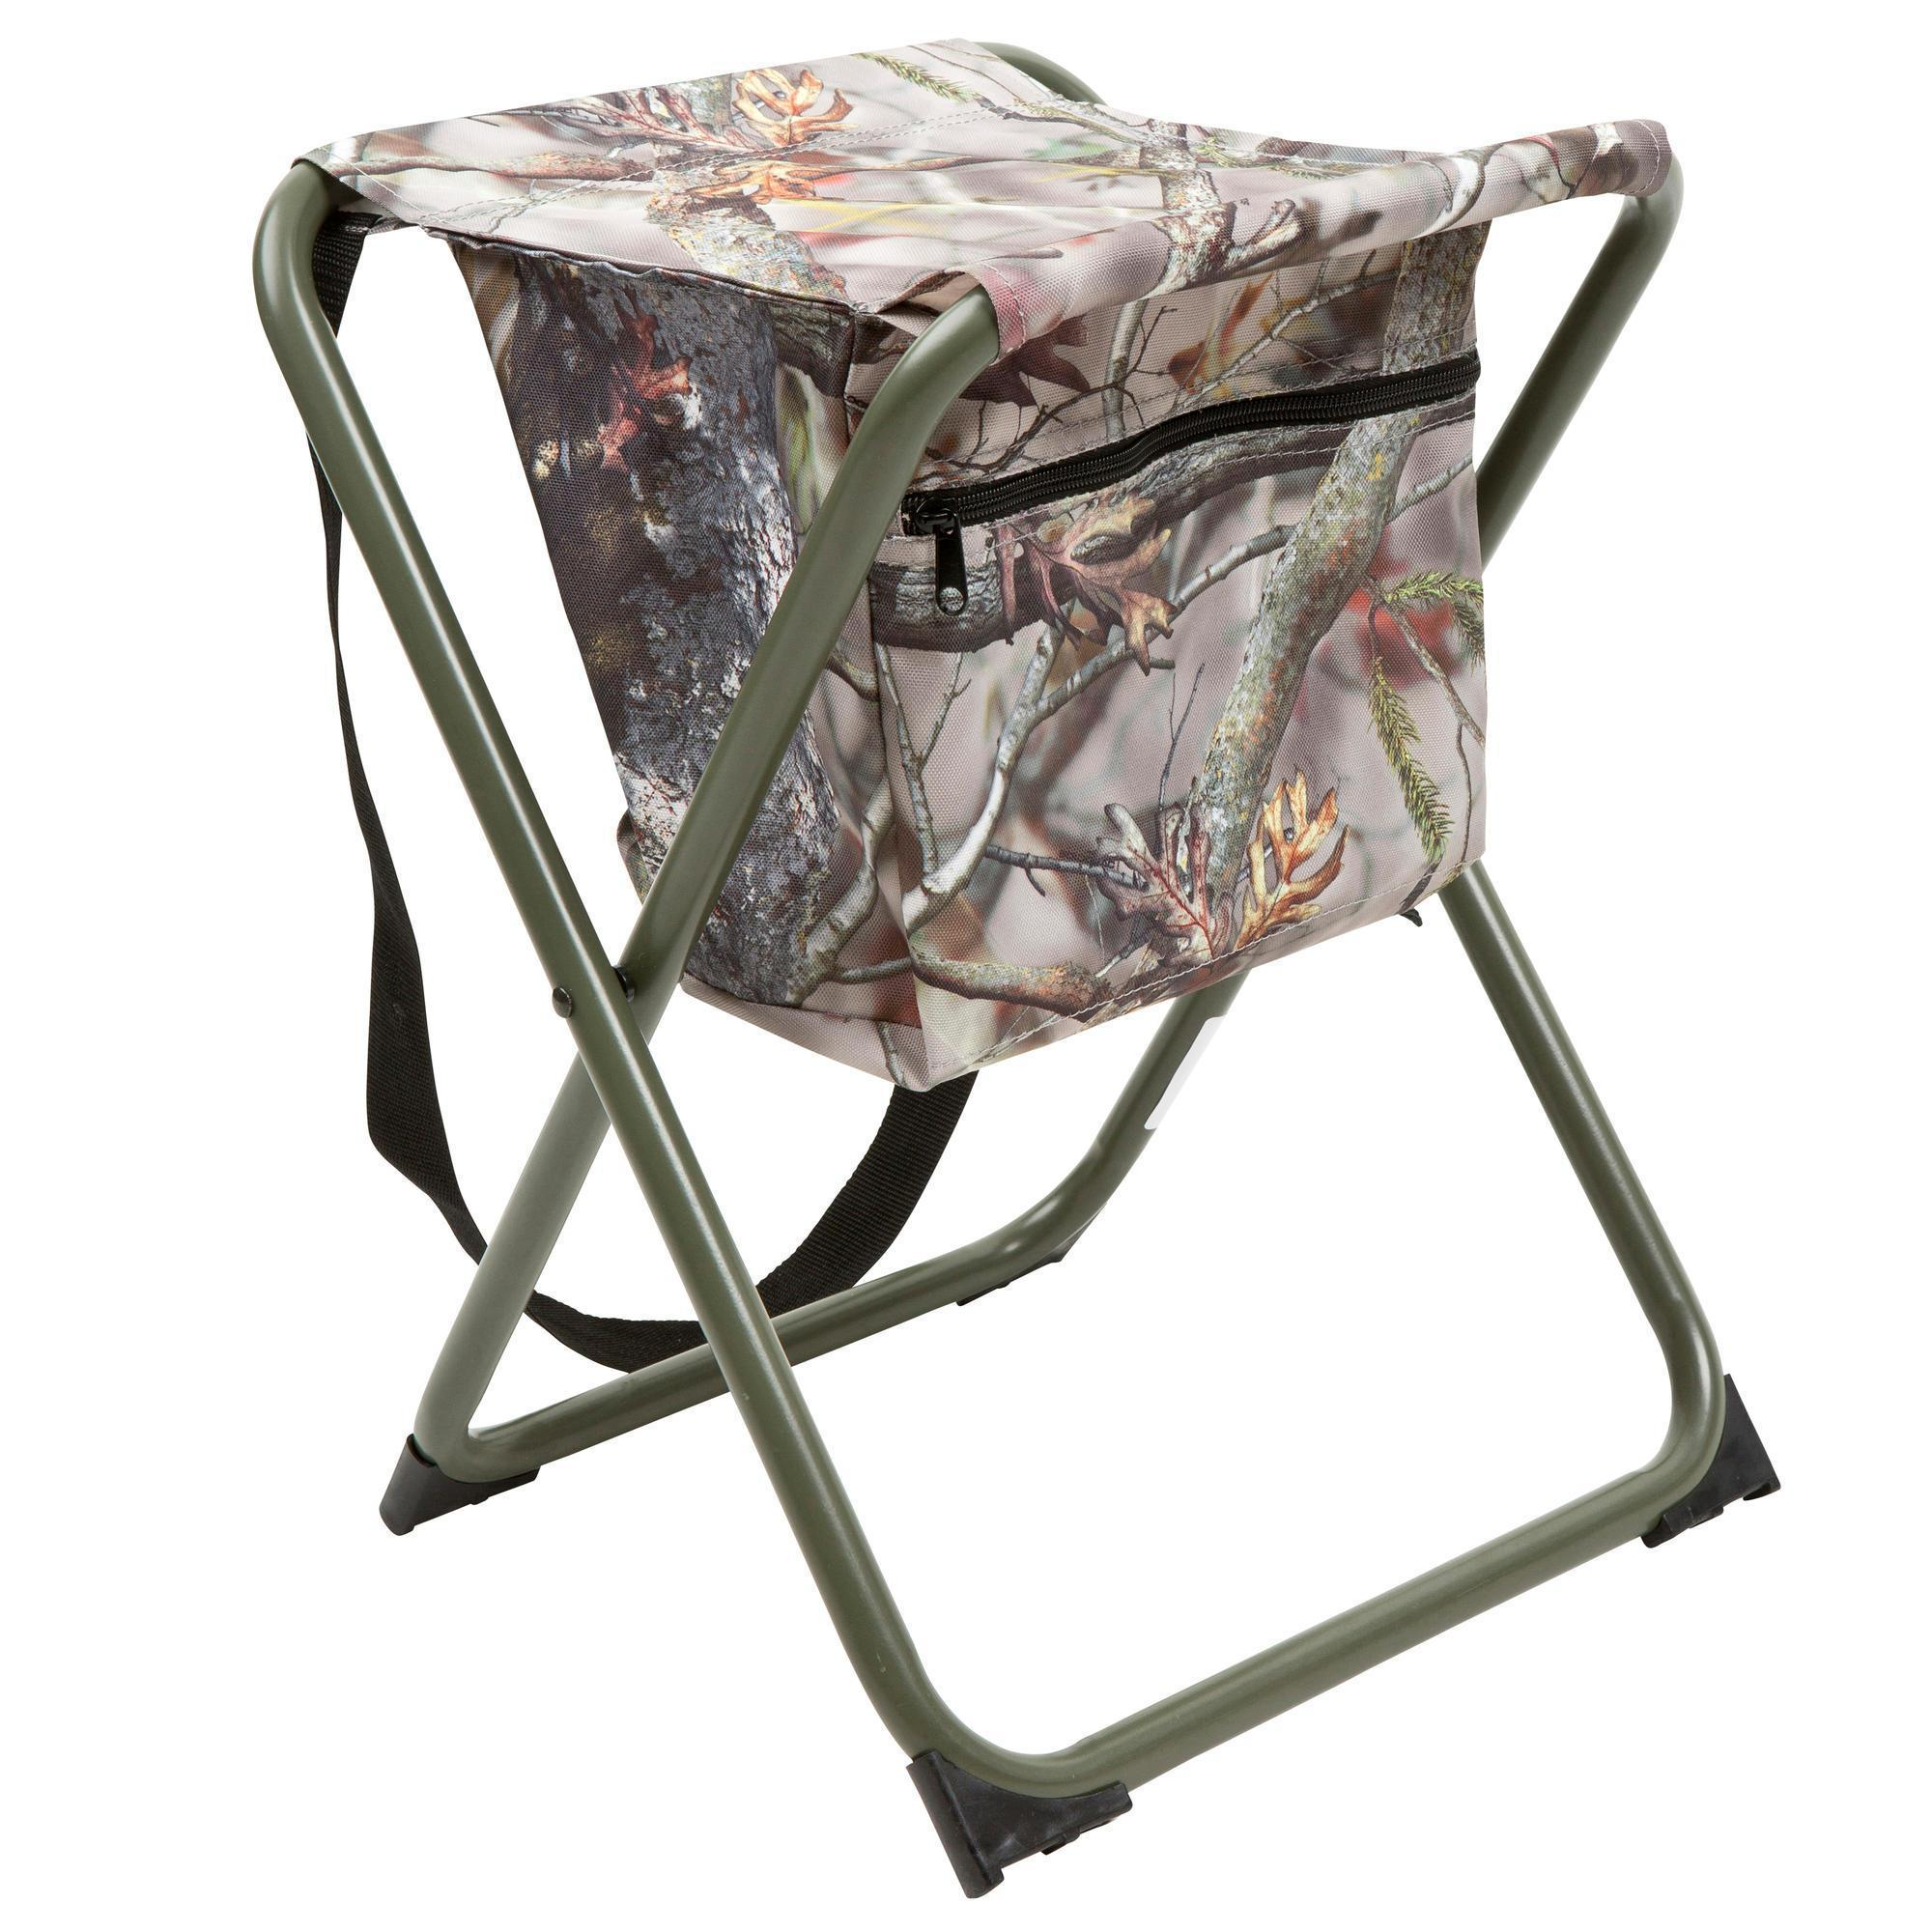 Pocket hunting chair camouflage brown